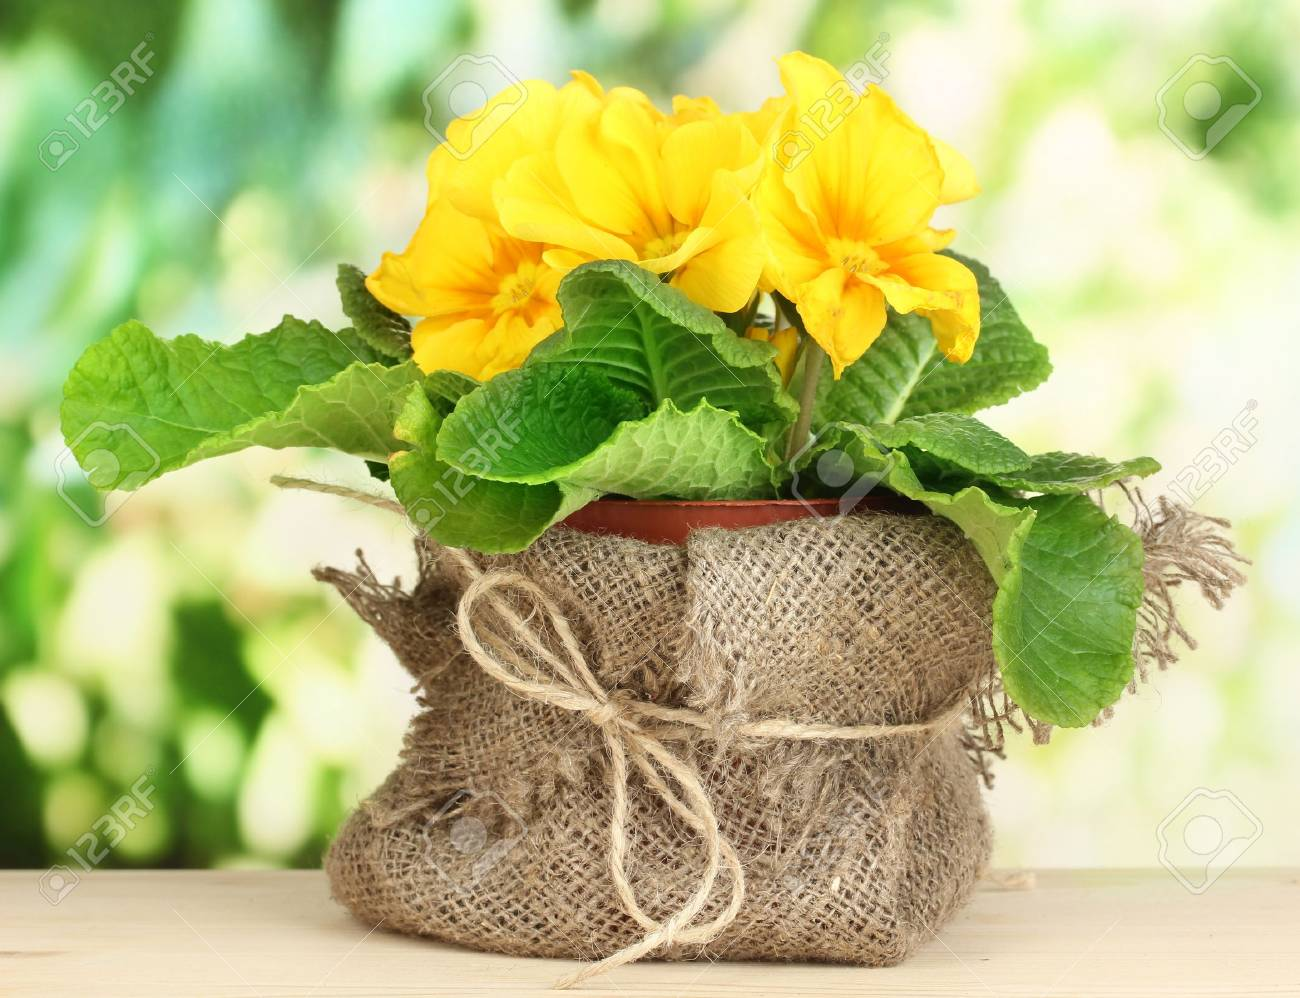 Beautiful yellow primula in flowerpot on wooden table on green background Stock Photo - 20602442